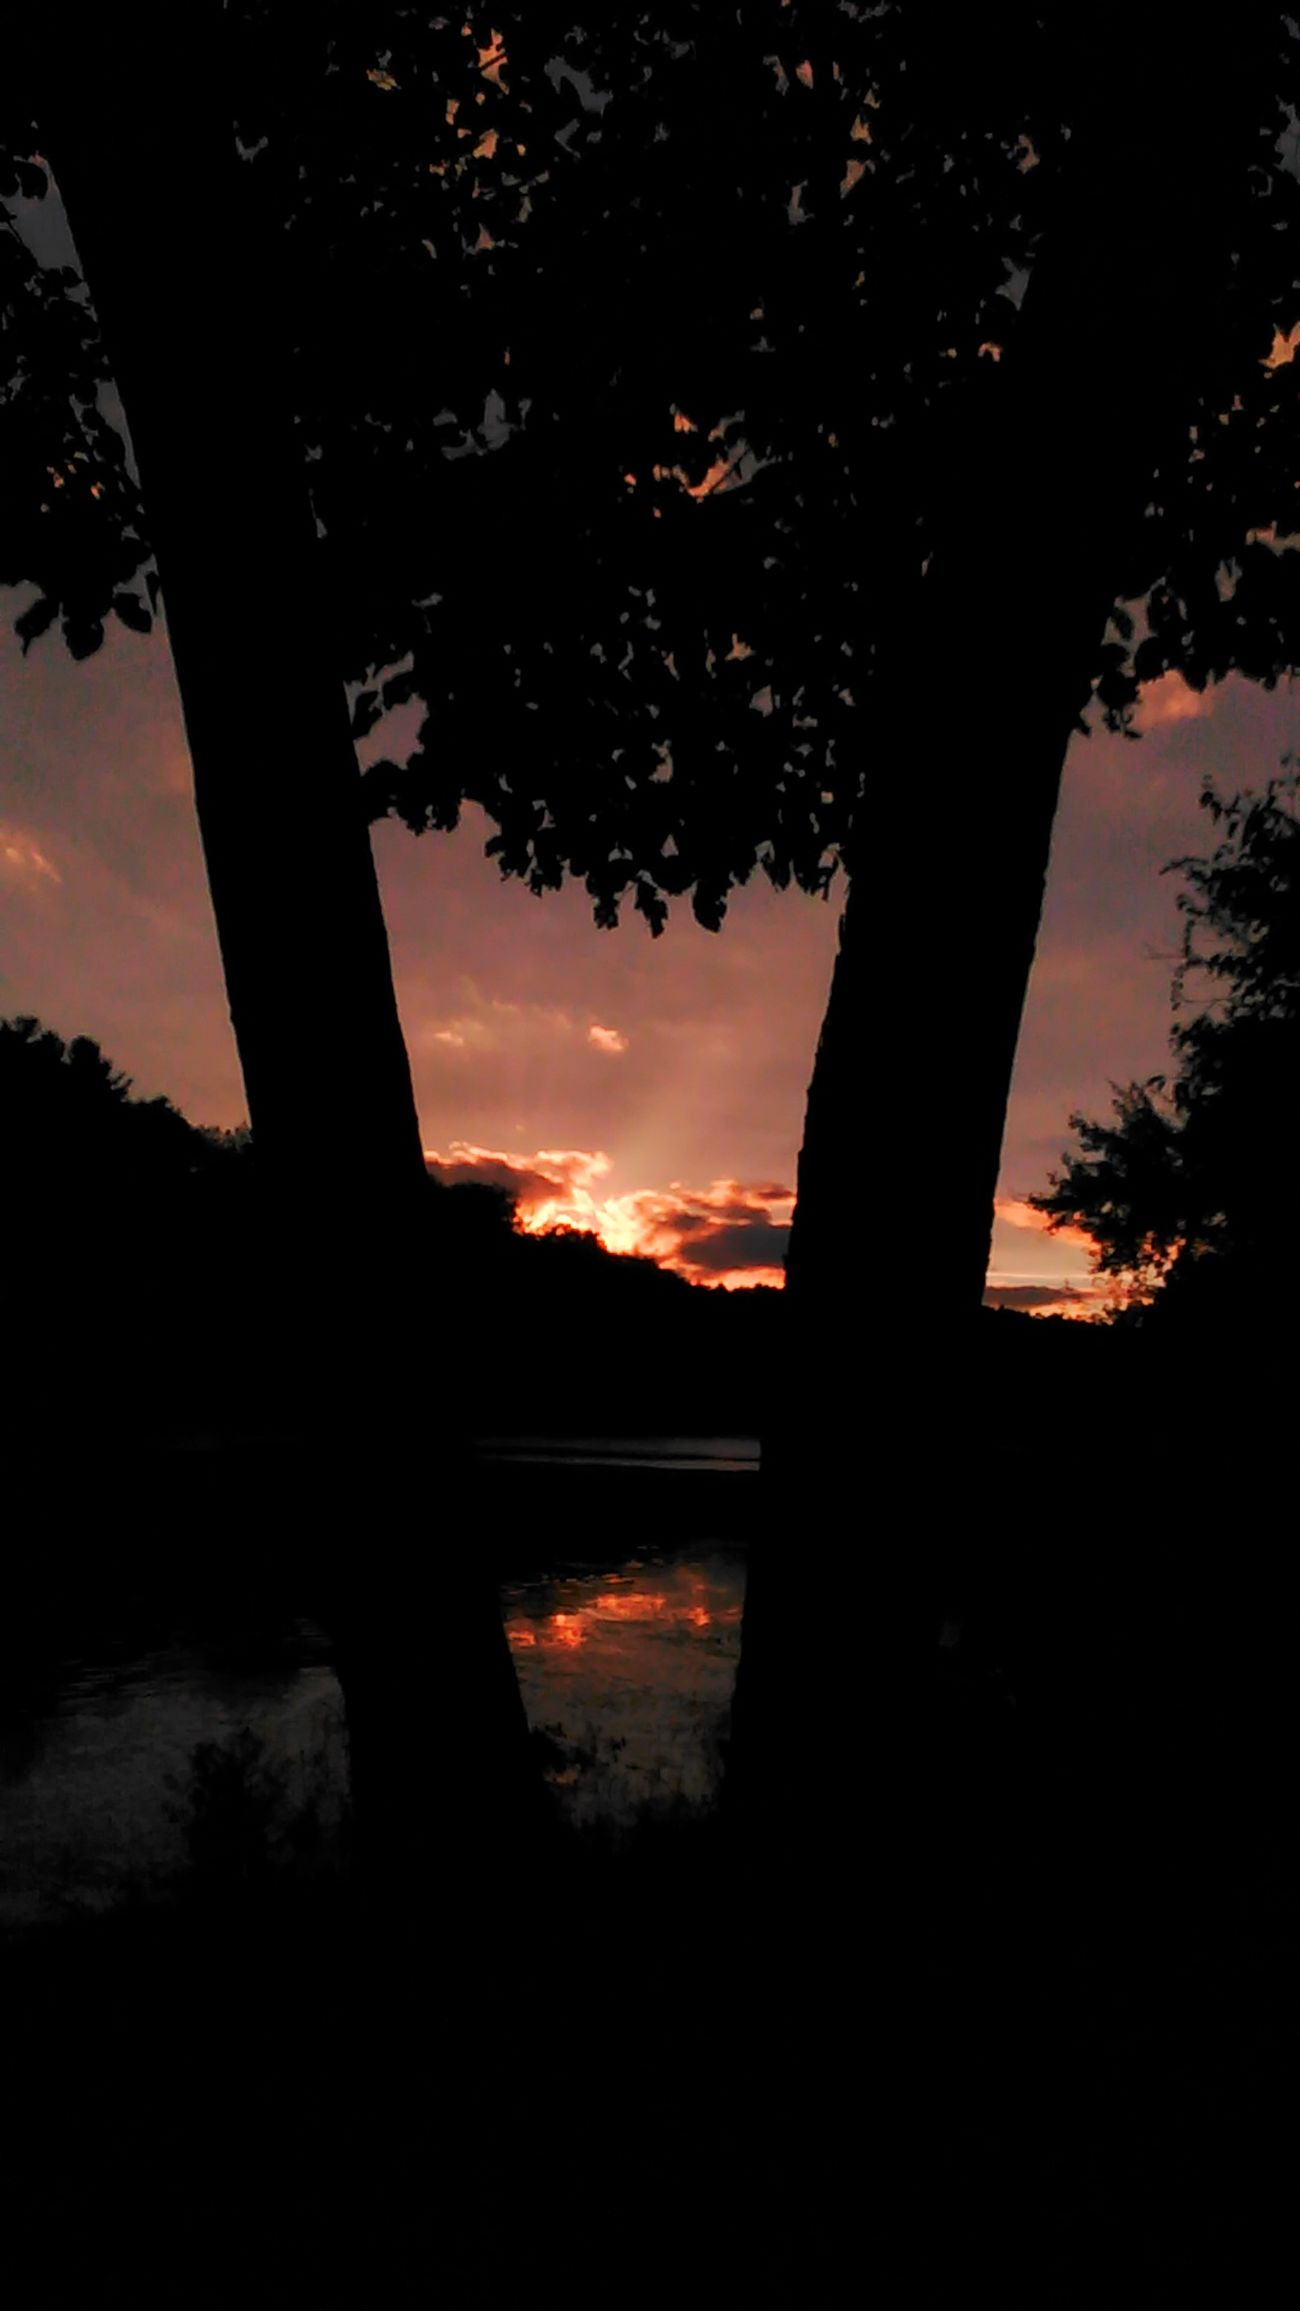 Tonight's sky Sunset Silhouette Tree Water Beauty In Nature Orange Color No Filter, No Edit, Just Photography Allegheny River Onlygodcouldcreatethis Sawonmyadventure Focus On Foreground Sunset_captures